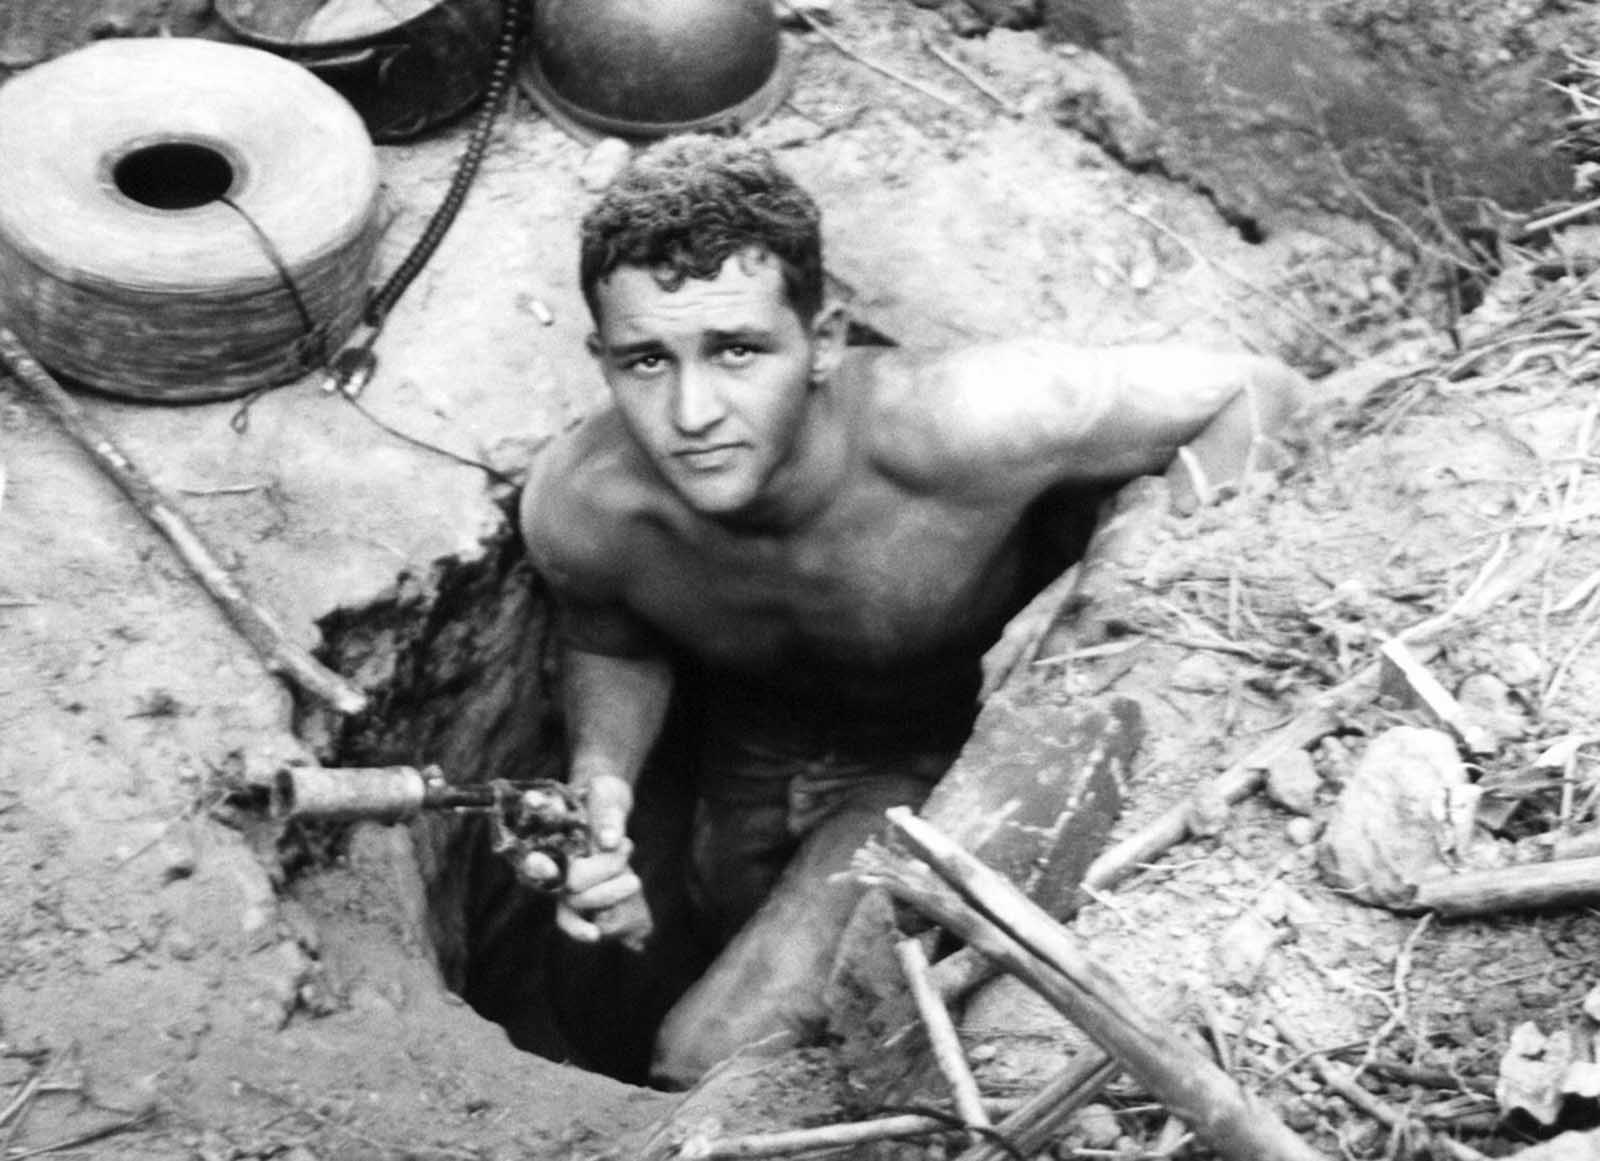 "Sergeant Ronald Payne, 21, of Atlanta, Georgia, emerges from a Viet Cong tunnel holding his silencer-equipped revolver with which he fired at guerrillas fleeing ahead of him underground. Payne and others of the 196th light infantry brigade probed the massive tunnel in Hobo Woods, South Vietnam, on January 21, 1967, and found detailed maps and plans of the enemy. The infantrymen who explored the complex are known as ""Tunnel Rats."" They were called out of the tunnels on January 21, and nauseating gas was pumped in."